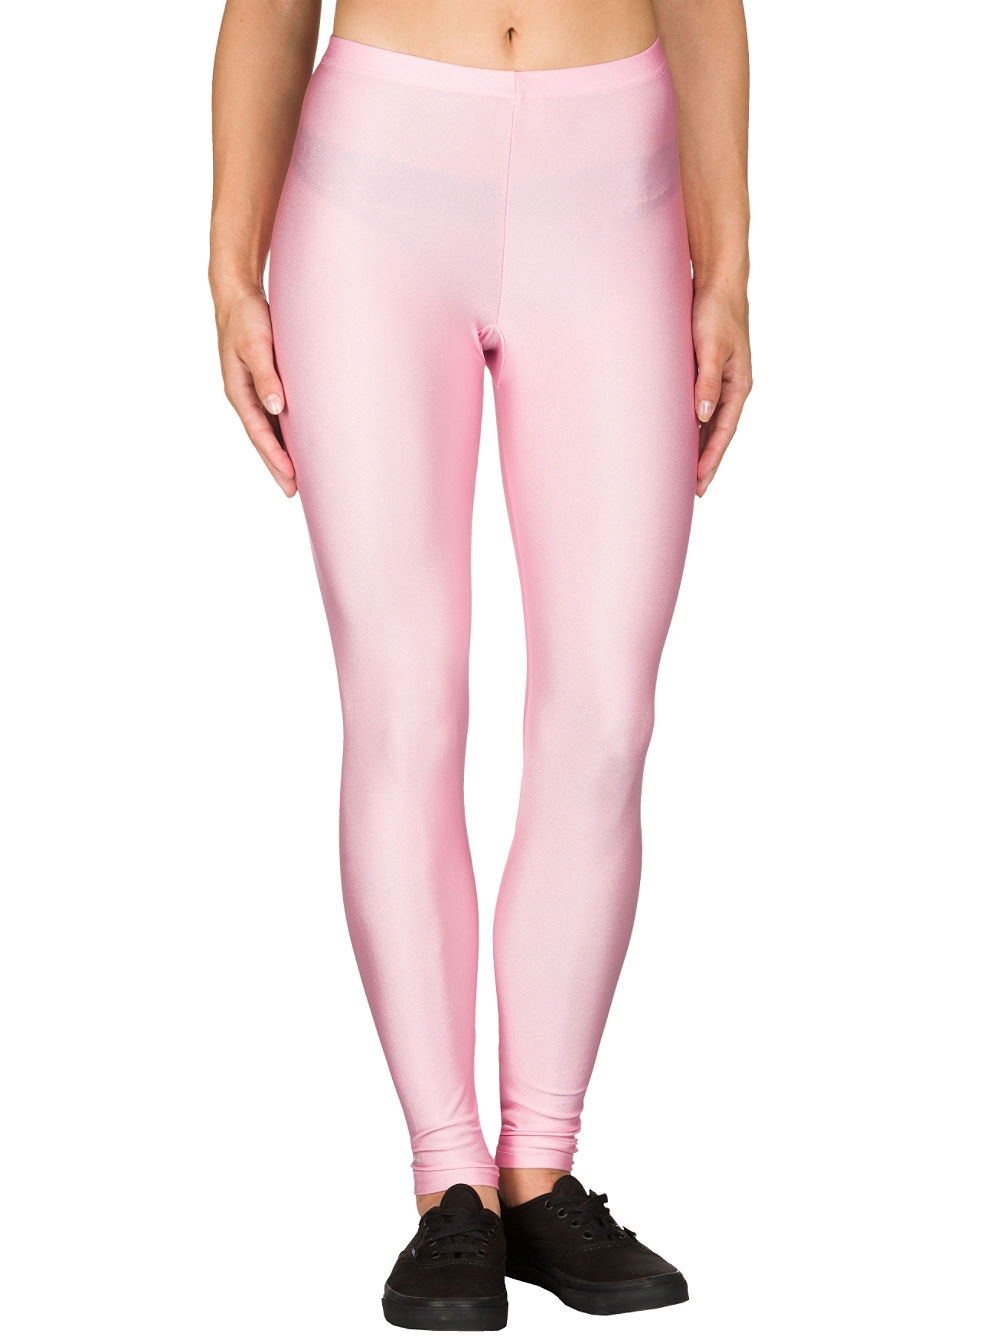 pcp-clothing-jacqueline-leggings